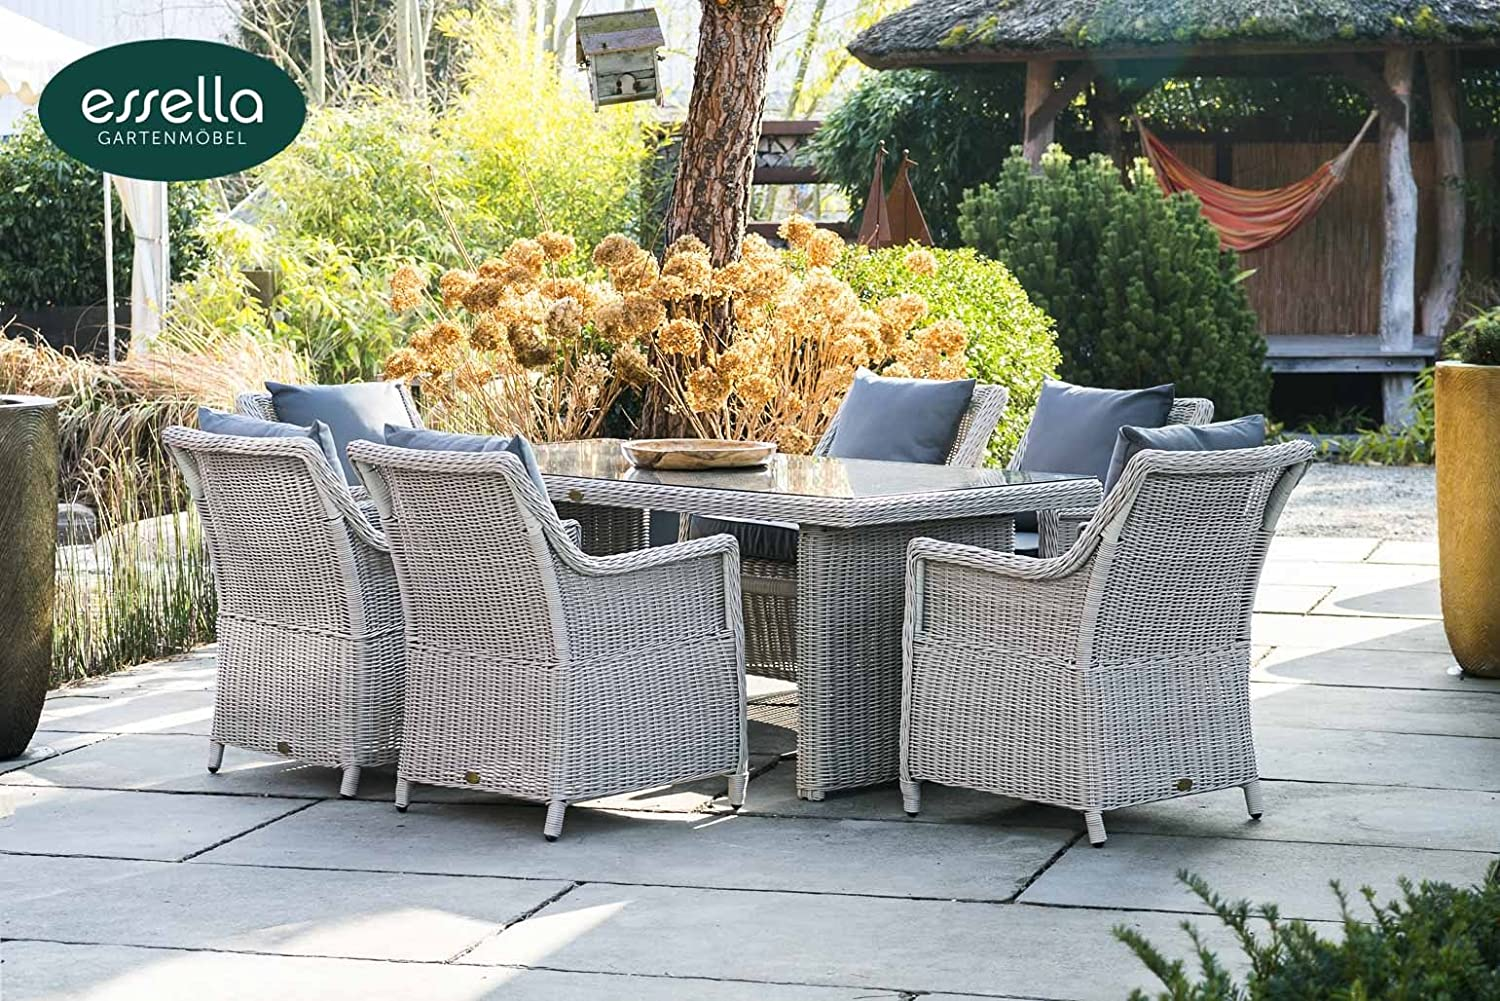 polyrattan sitzgruppe dubai 6 personen rundgeflecht vintage weiss gartenm bel. Black Bedroom Furniture Sets. Home Design Ideas